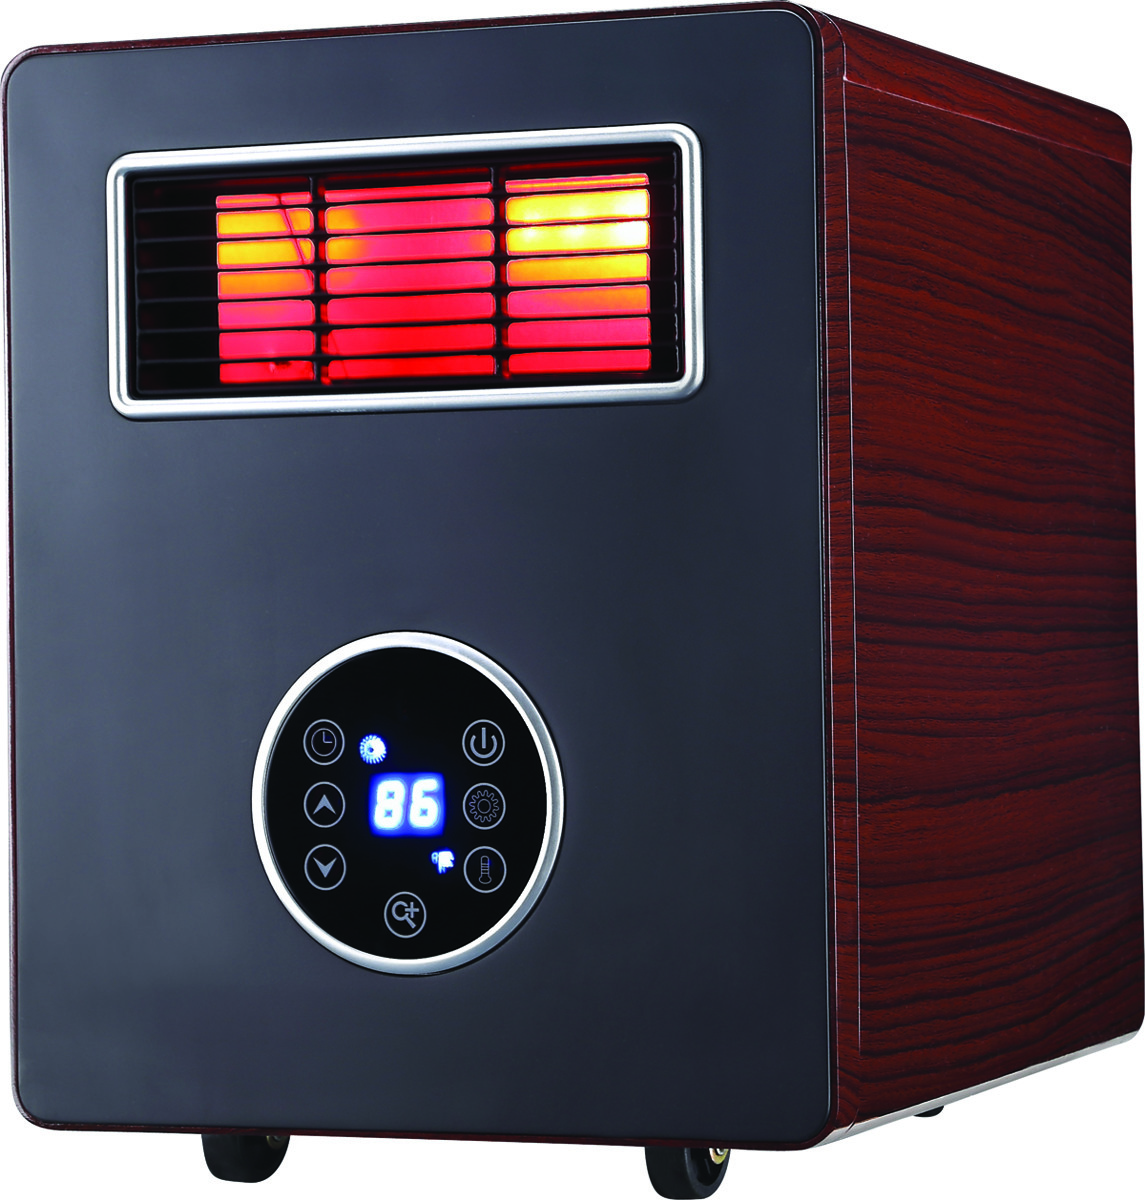 Heater World World Marketing CDE4800 Electric Heater With Advanced PTC Ceramic Heating  Process Wood Grain Cabinet (013204248000) [1]